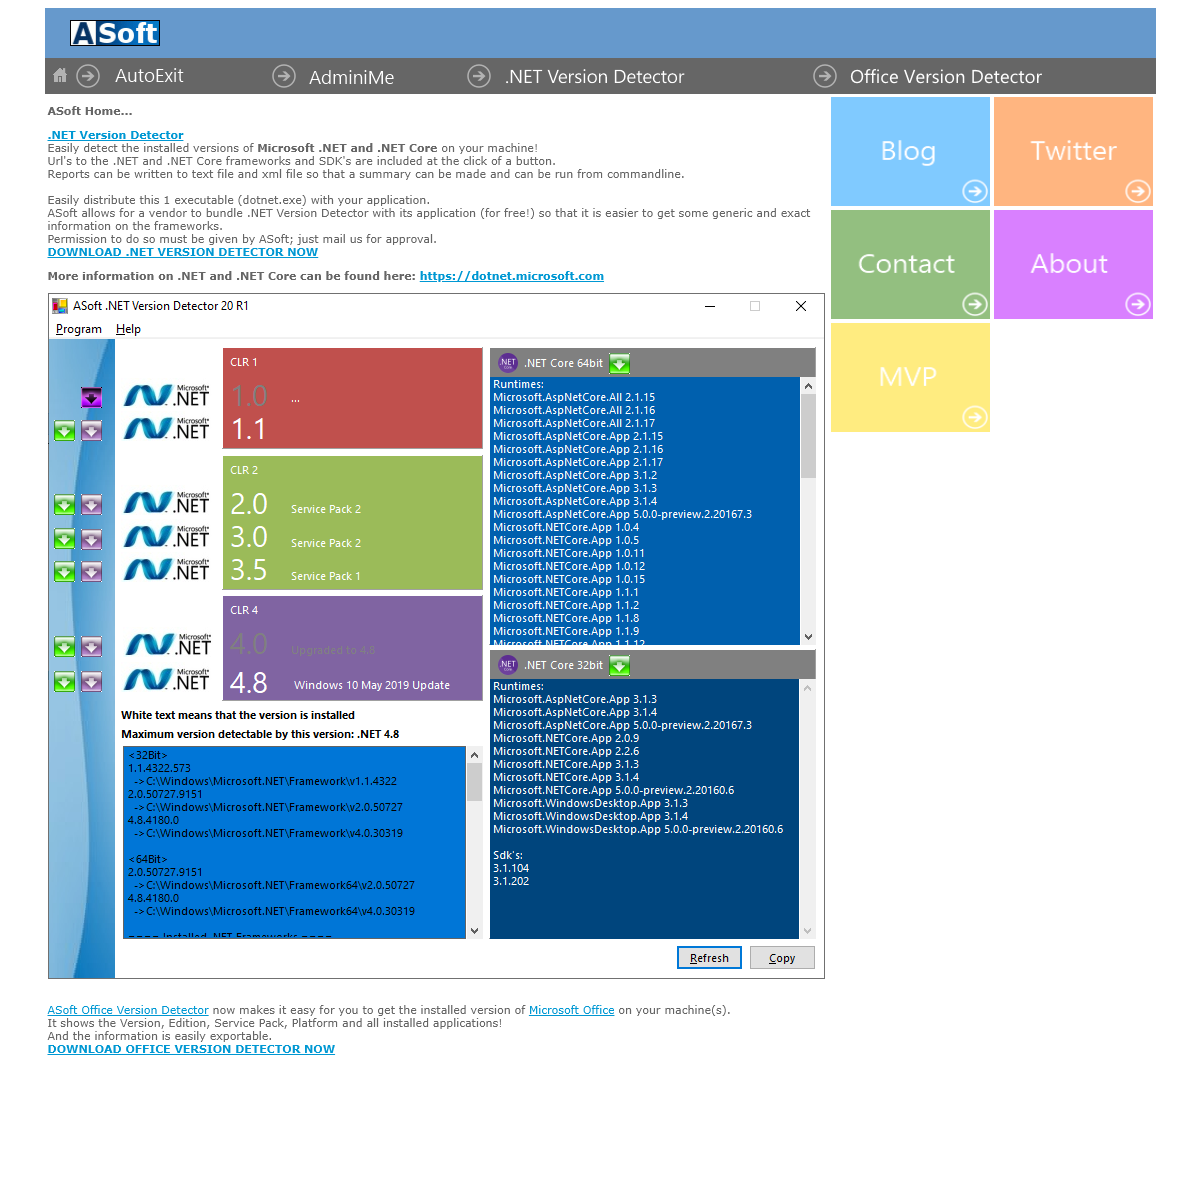 ASoft, home of AutoExit, AdminiMe and .NET Version Detector